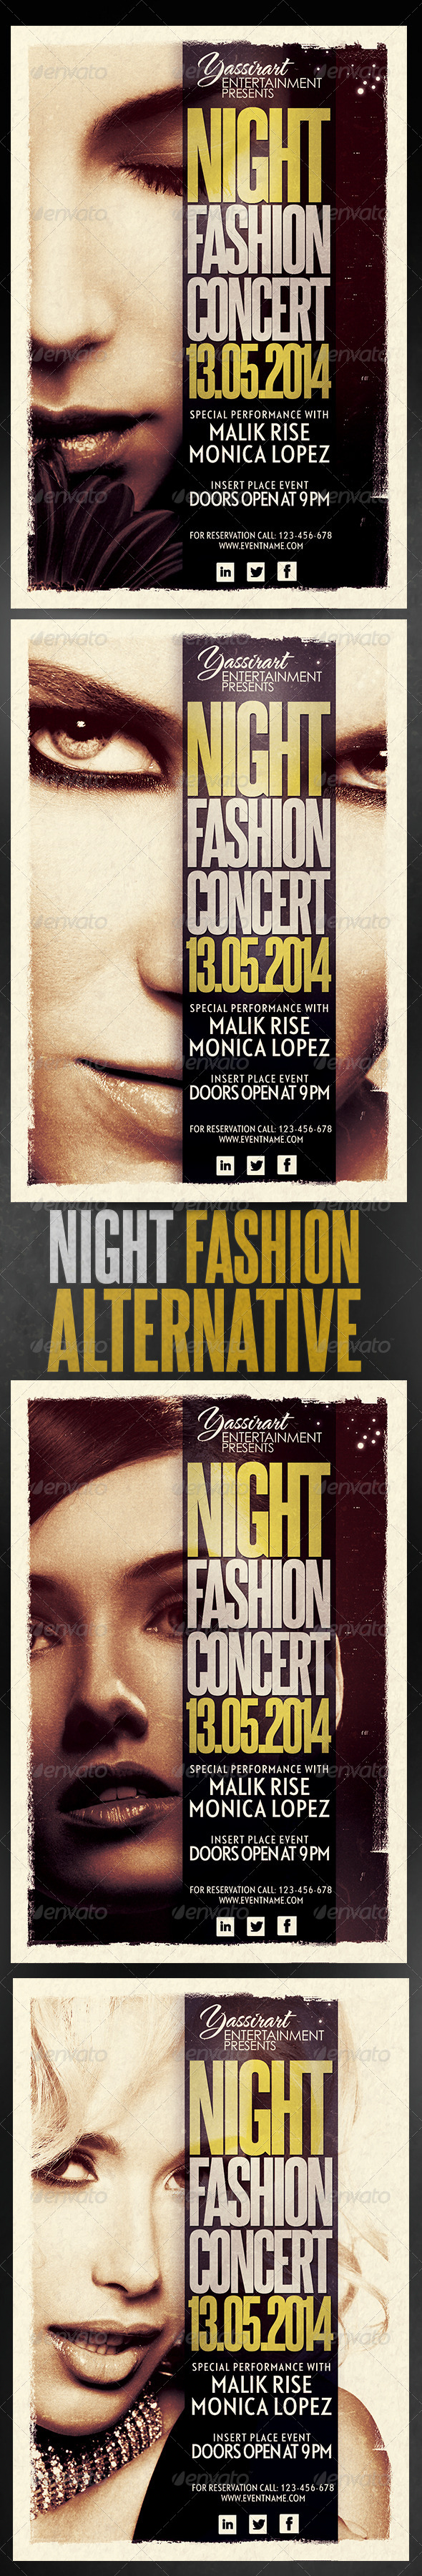 Night Fashion Concert Flyer Template - Clubs & Parties Events